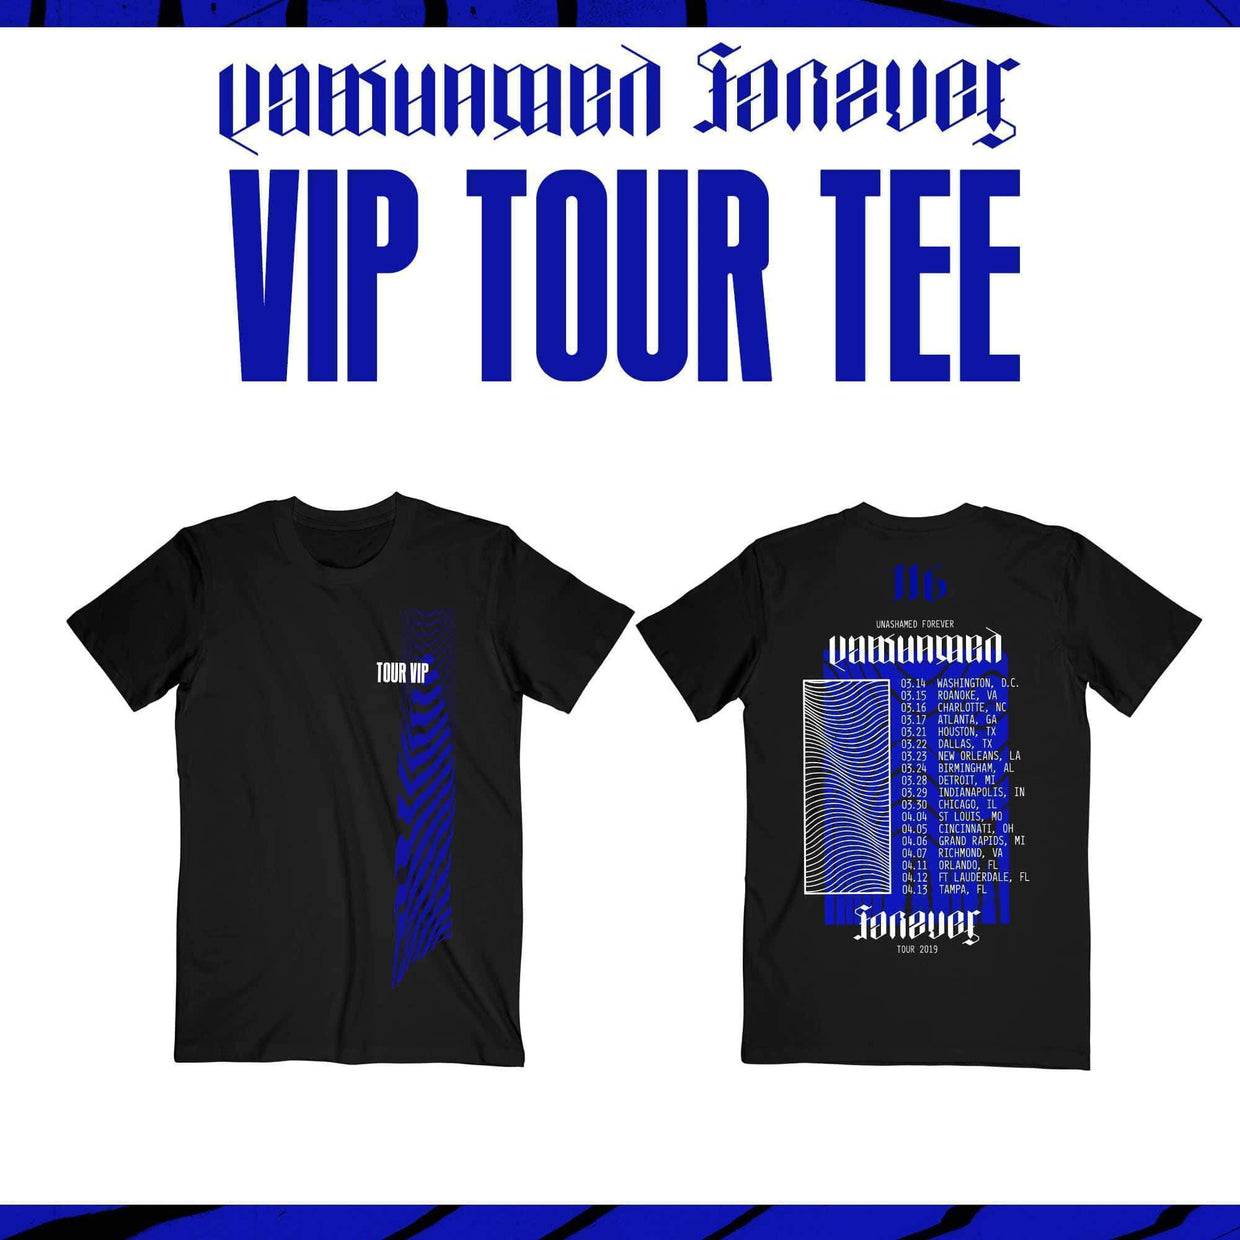 Unashamed Forever Tour - DIAMOND VIP - Chicago, IL - 03/30